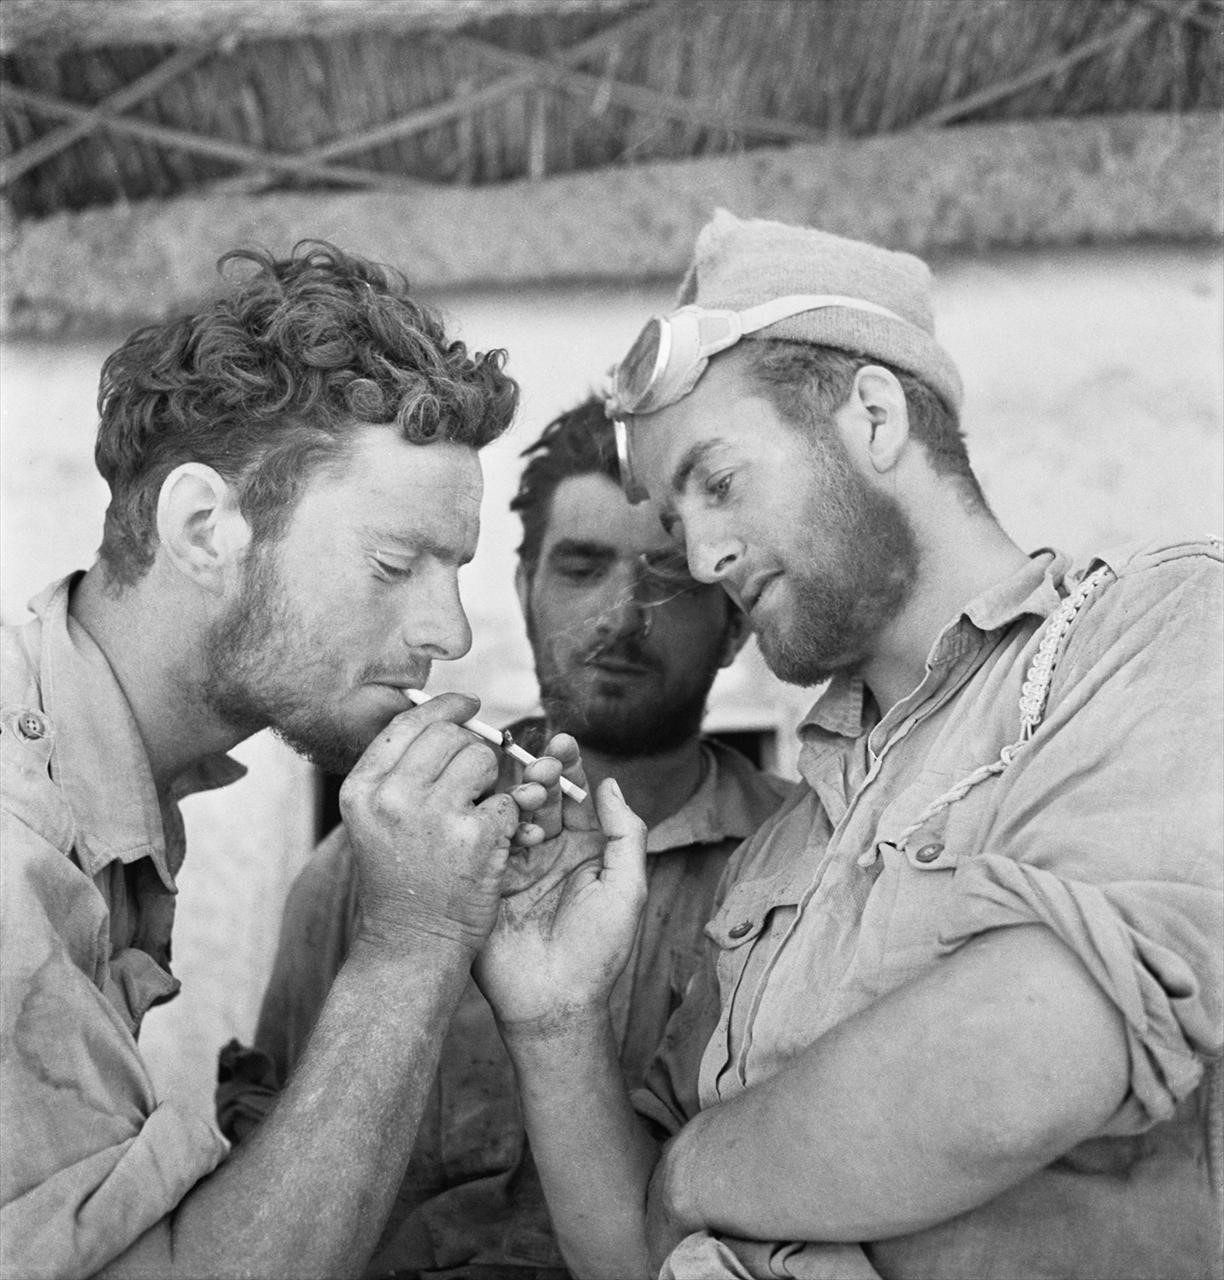 Men of the Long Range Desert Group, Siwa, Libya, 1942